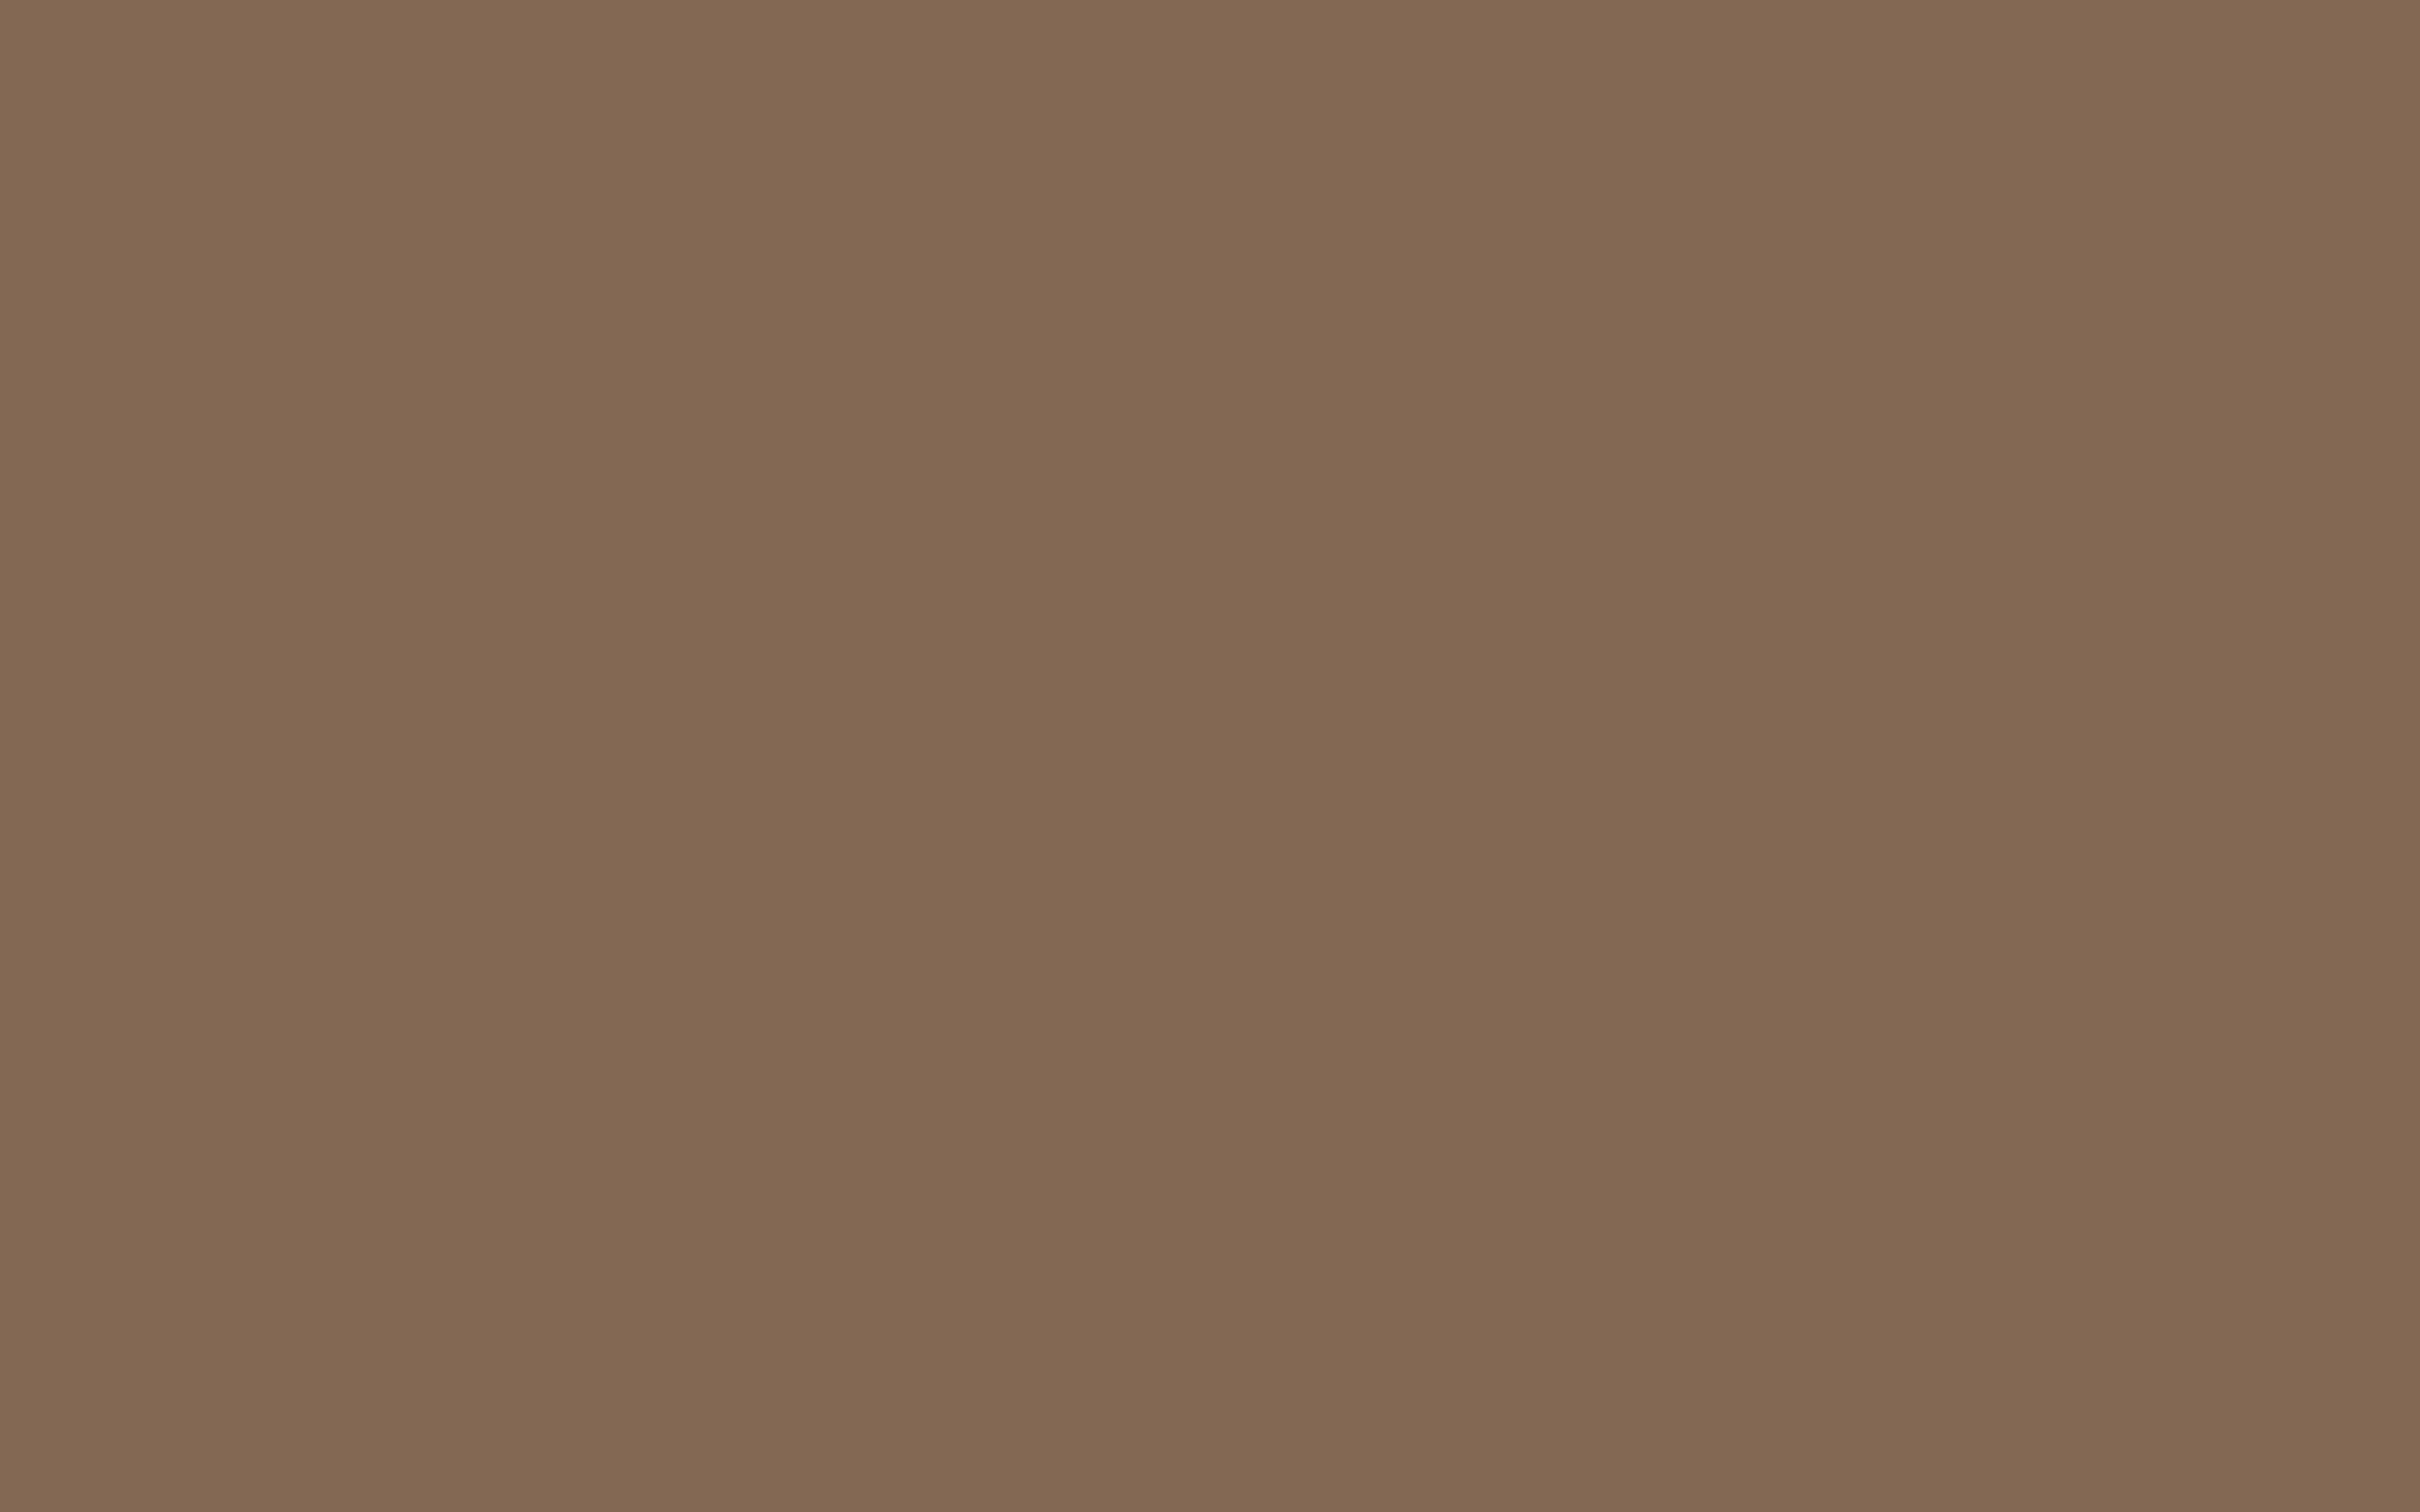 2560x1600 Pastel Brown Solid Color Background